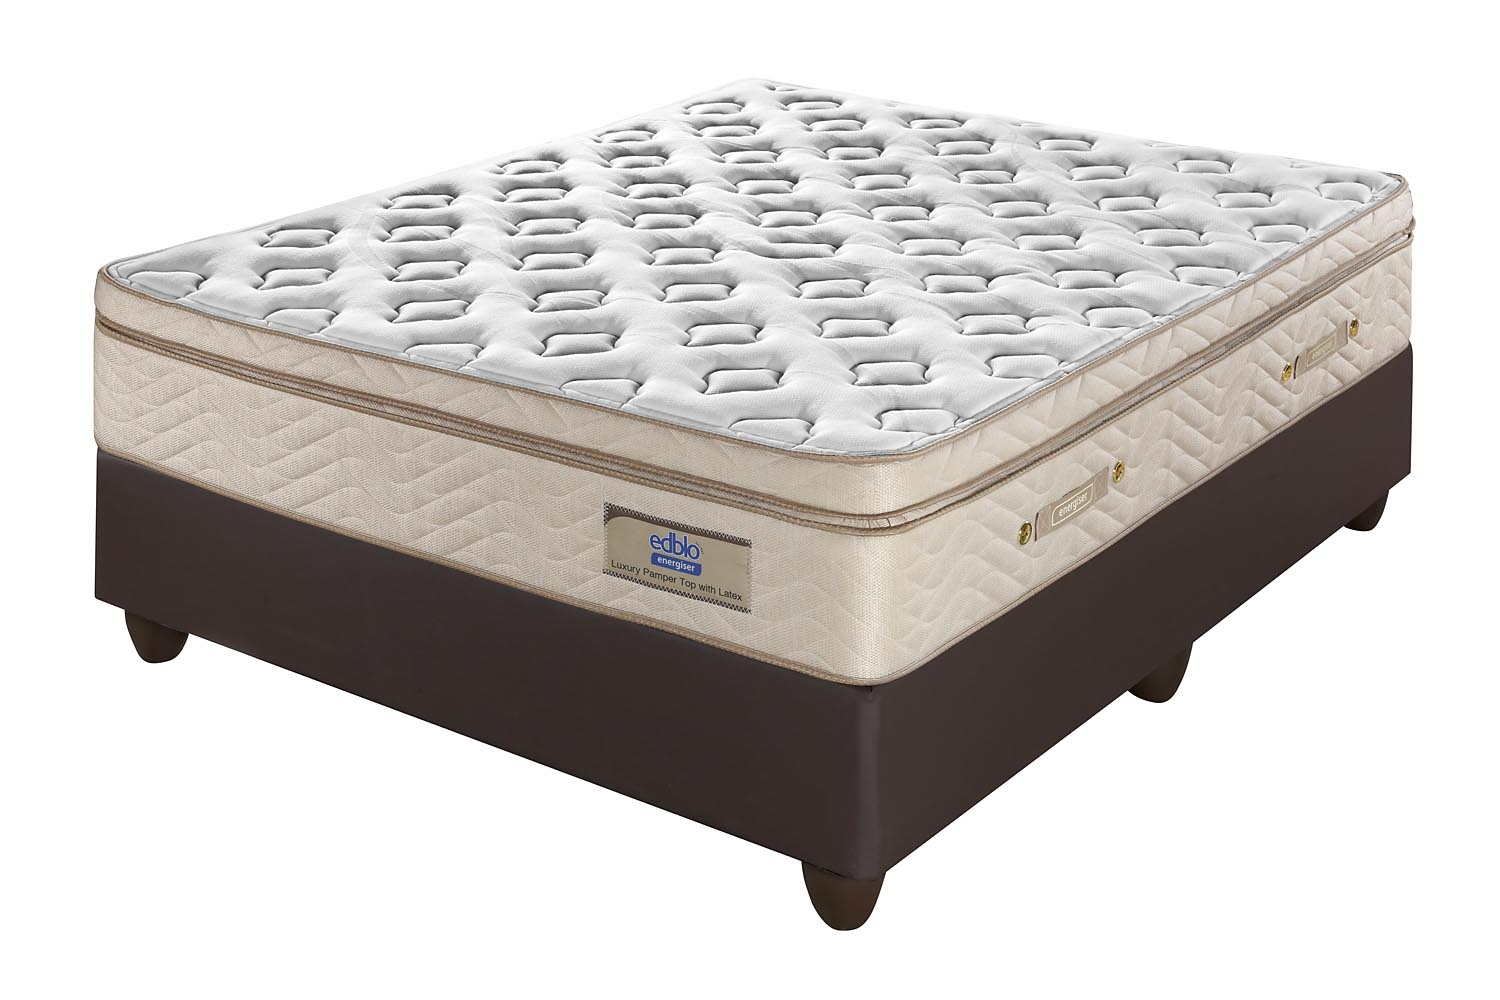 Edblo Energiser Luxury Pamper Top Bed Beds And More